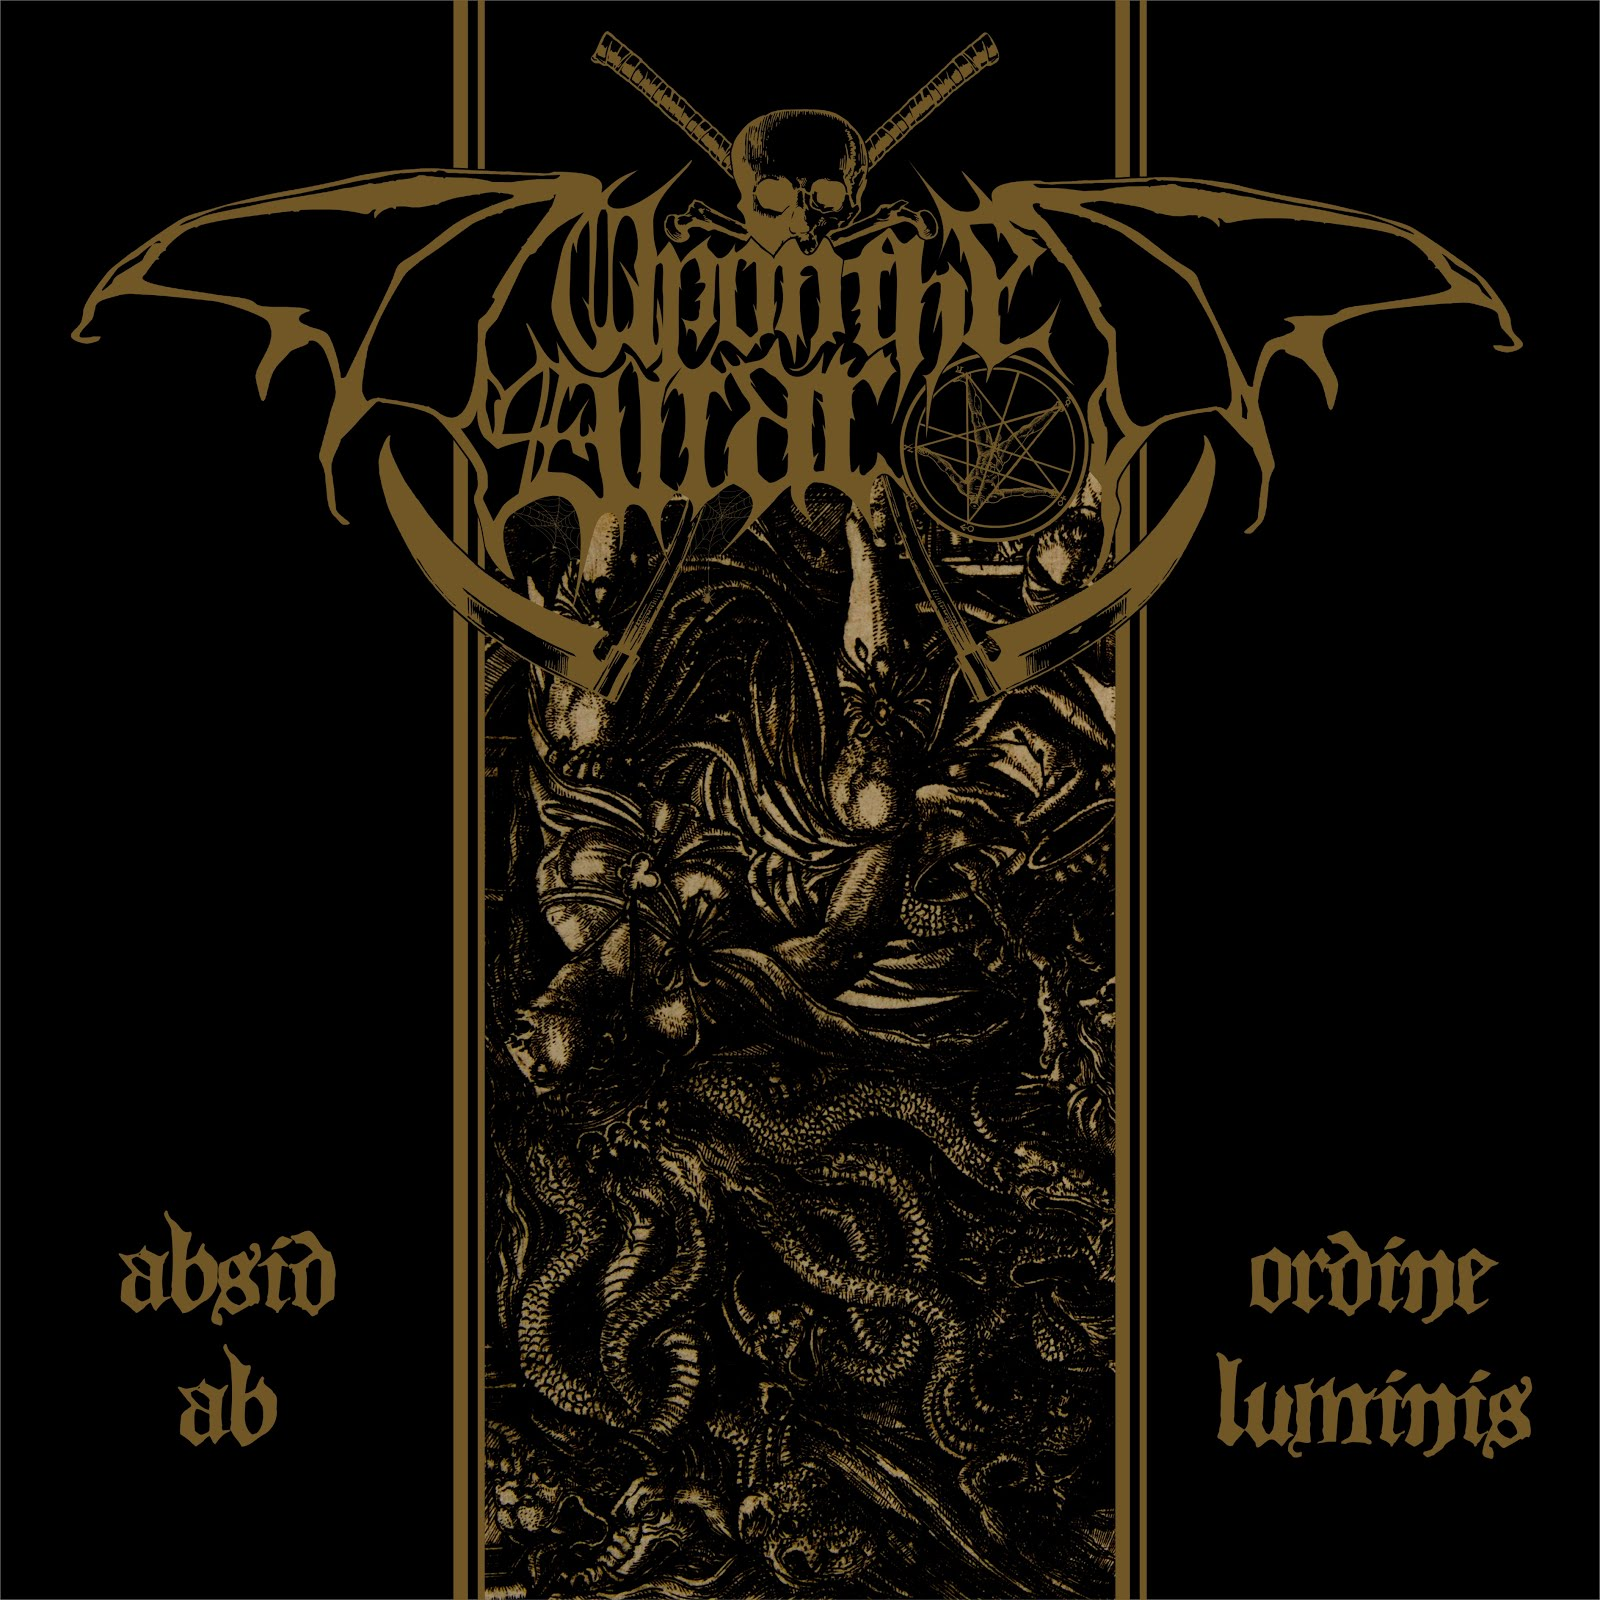 Upon the Altar - Absid ab Ordine Luminis- Press Release + Full Album Stream.